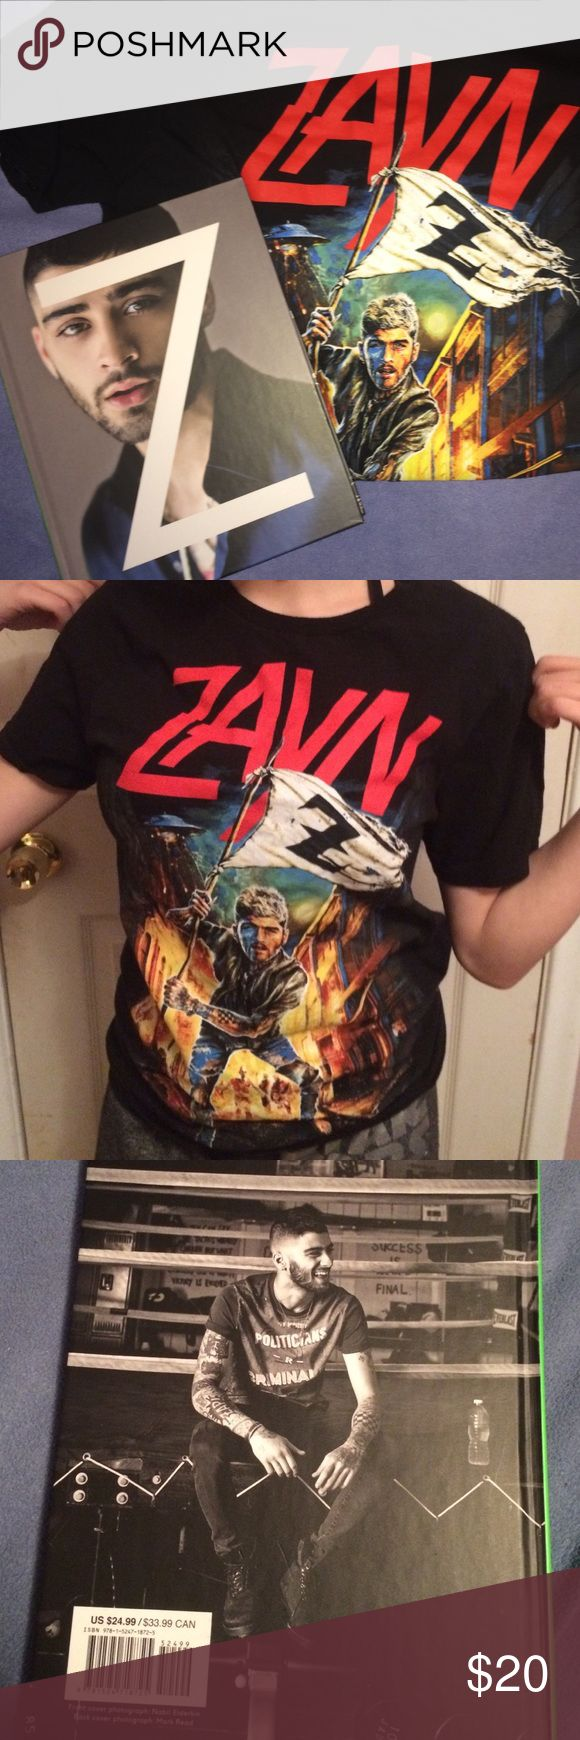 The Zayn Bundle This Zayn Malik bundle comes with an oversized Zayn T-Shirt and Zayn's biography. I cut off the tag on the shirt. Small, but fits more medium. Got it from Hot Topic. All of my earnings go towards Syrian charity organizations (The Syrian Project, Mercy Corps, One Nation) that aid those who have lost everything. Zayn Tops Tees - Short Sleeve